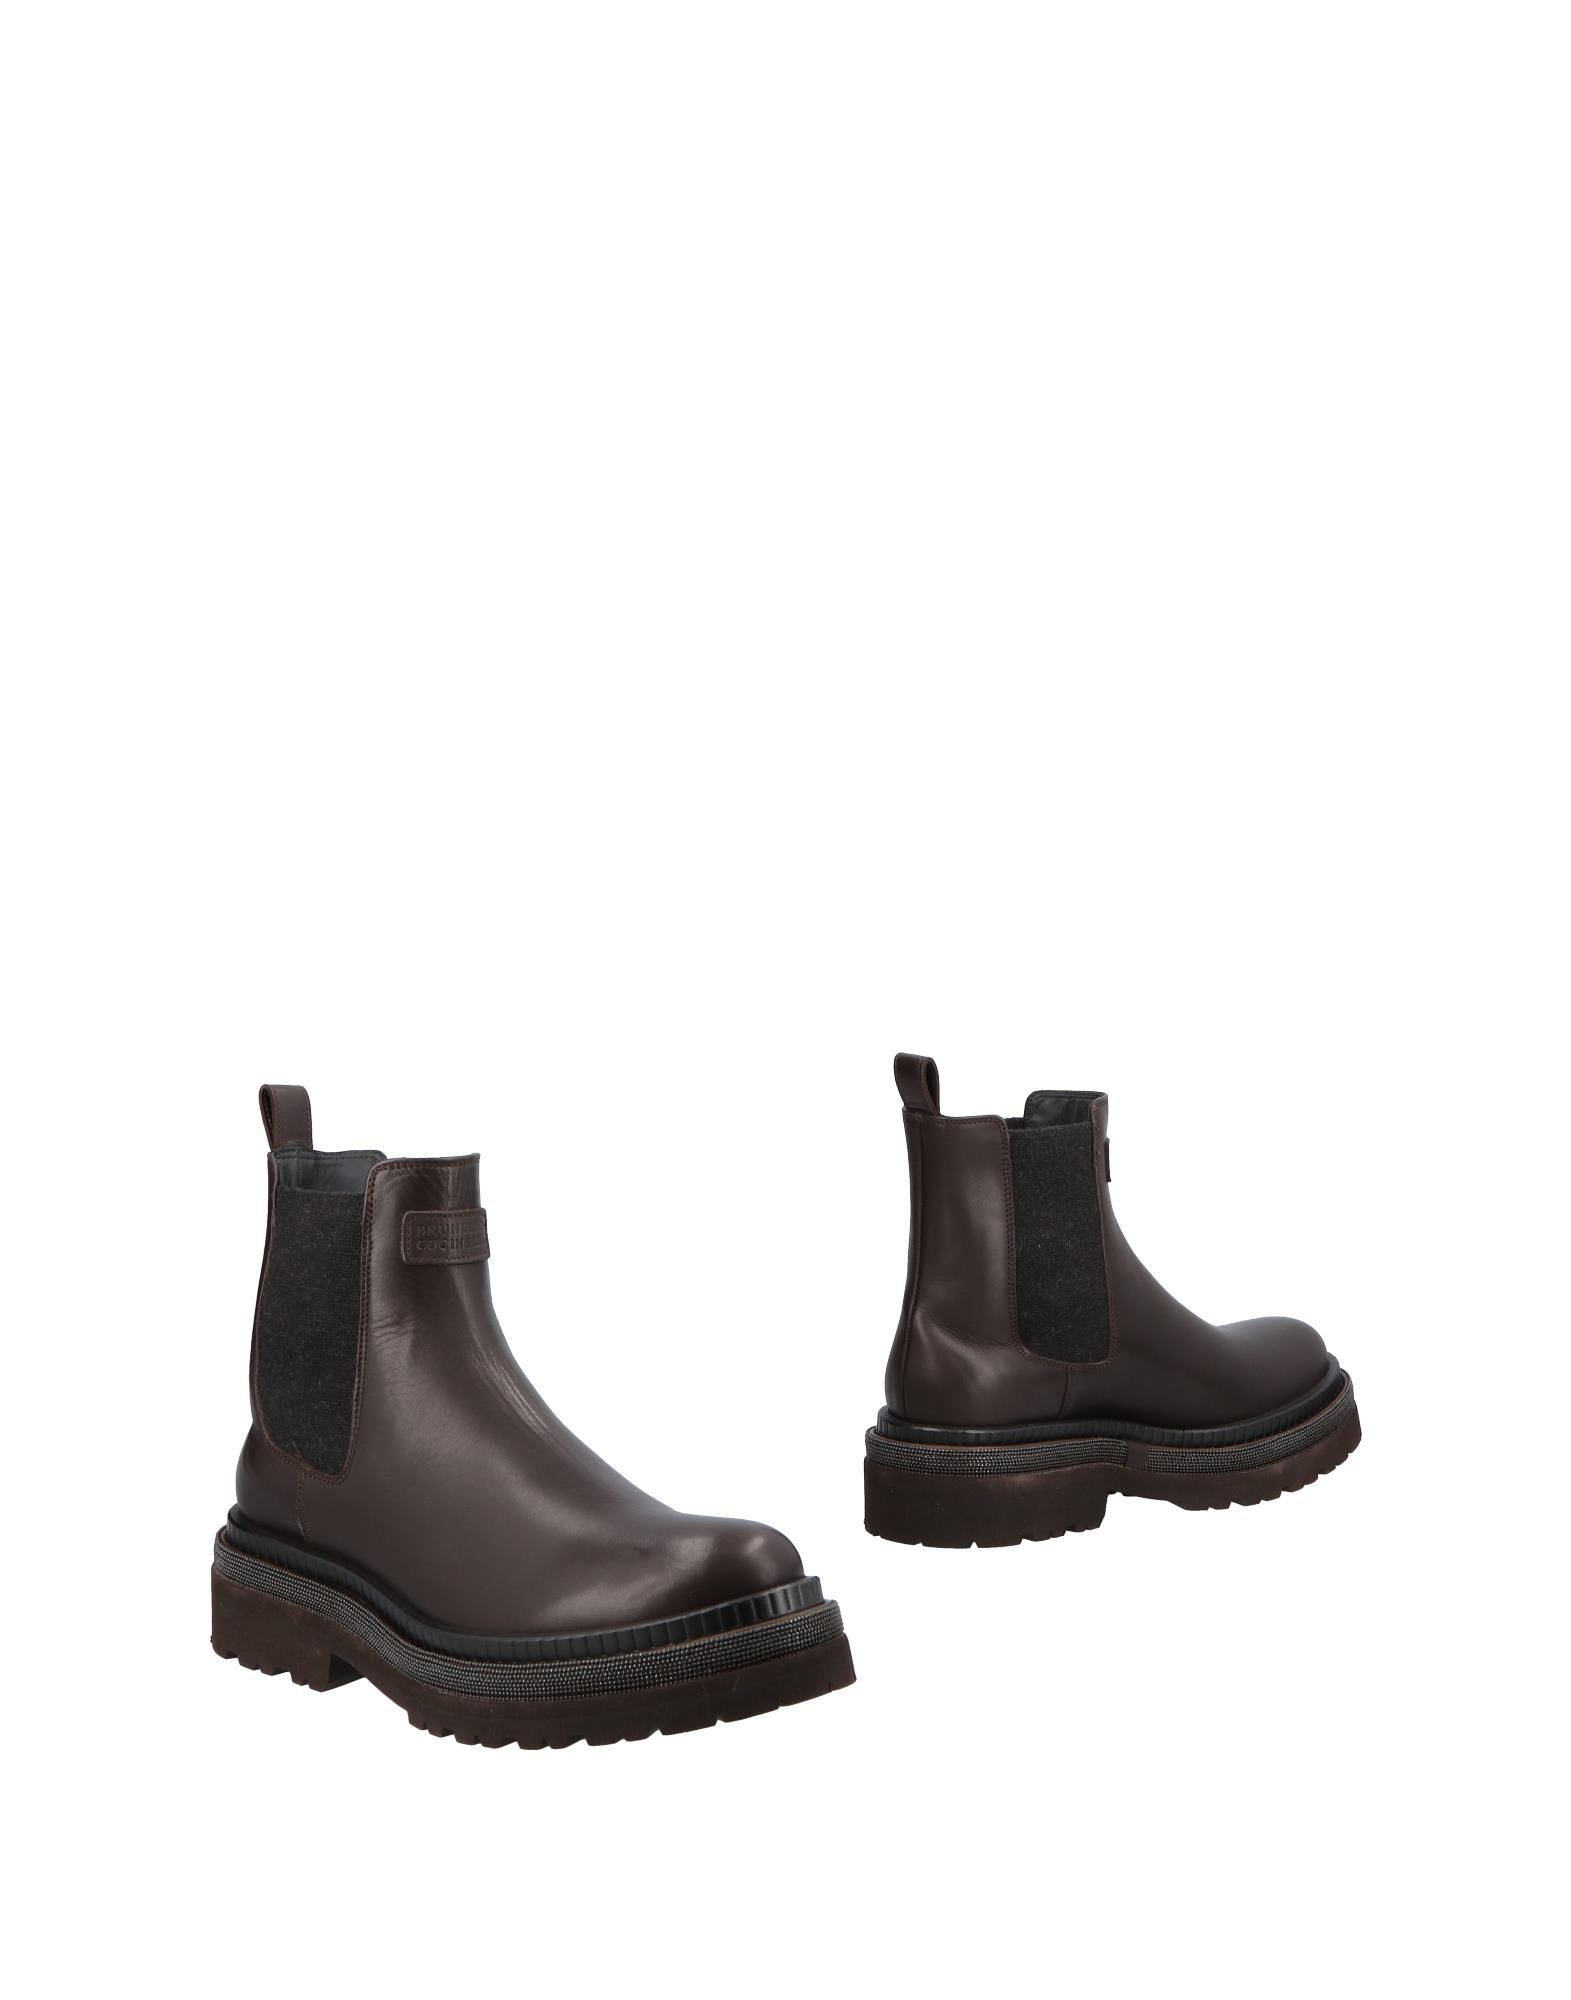 Brunello Cucinelli Ankle Boot - Boots Women Brunello Cucinelli Ankle Boots - online on  Australia - 11504964OD 2502ef